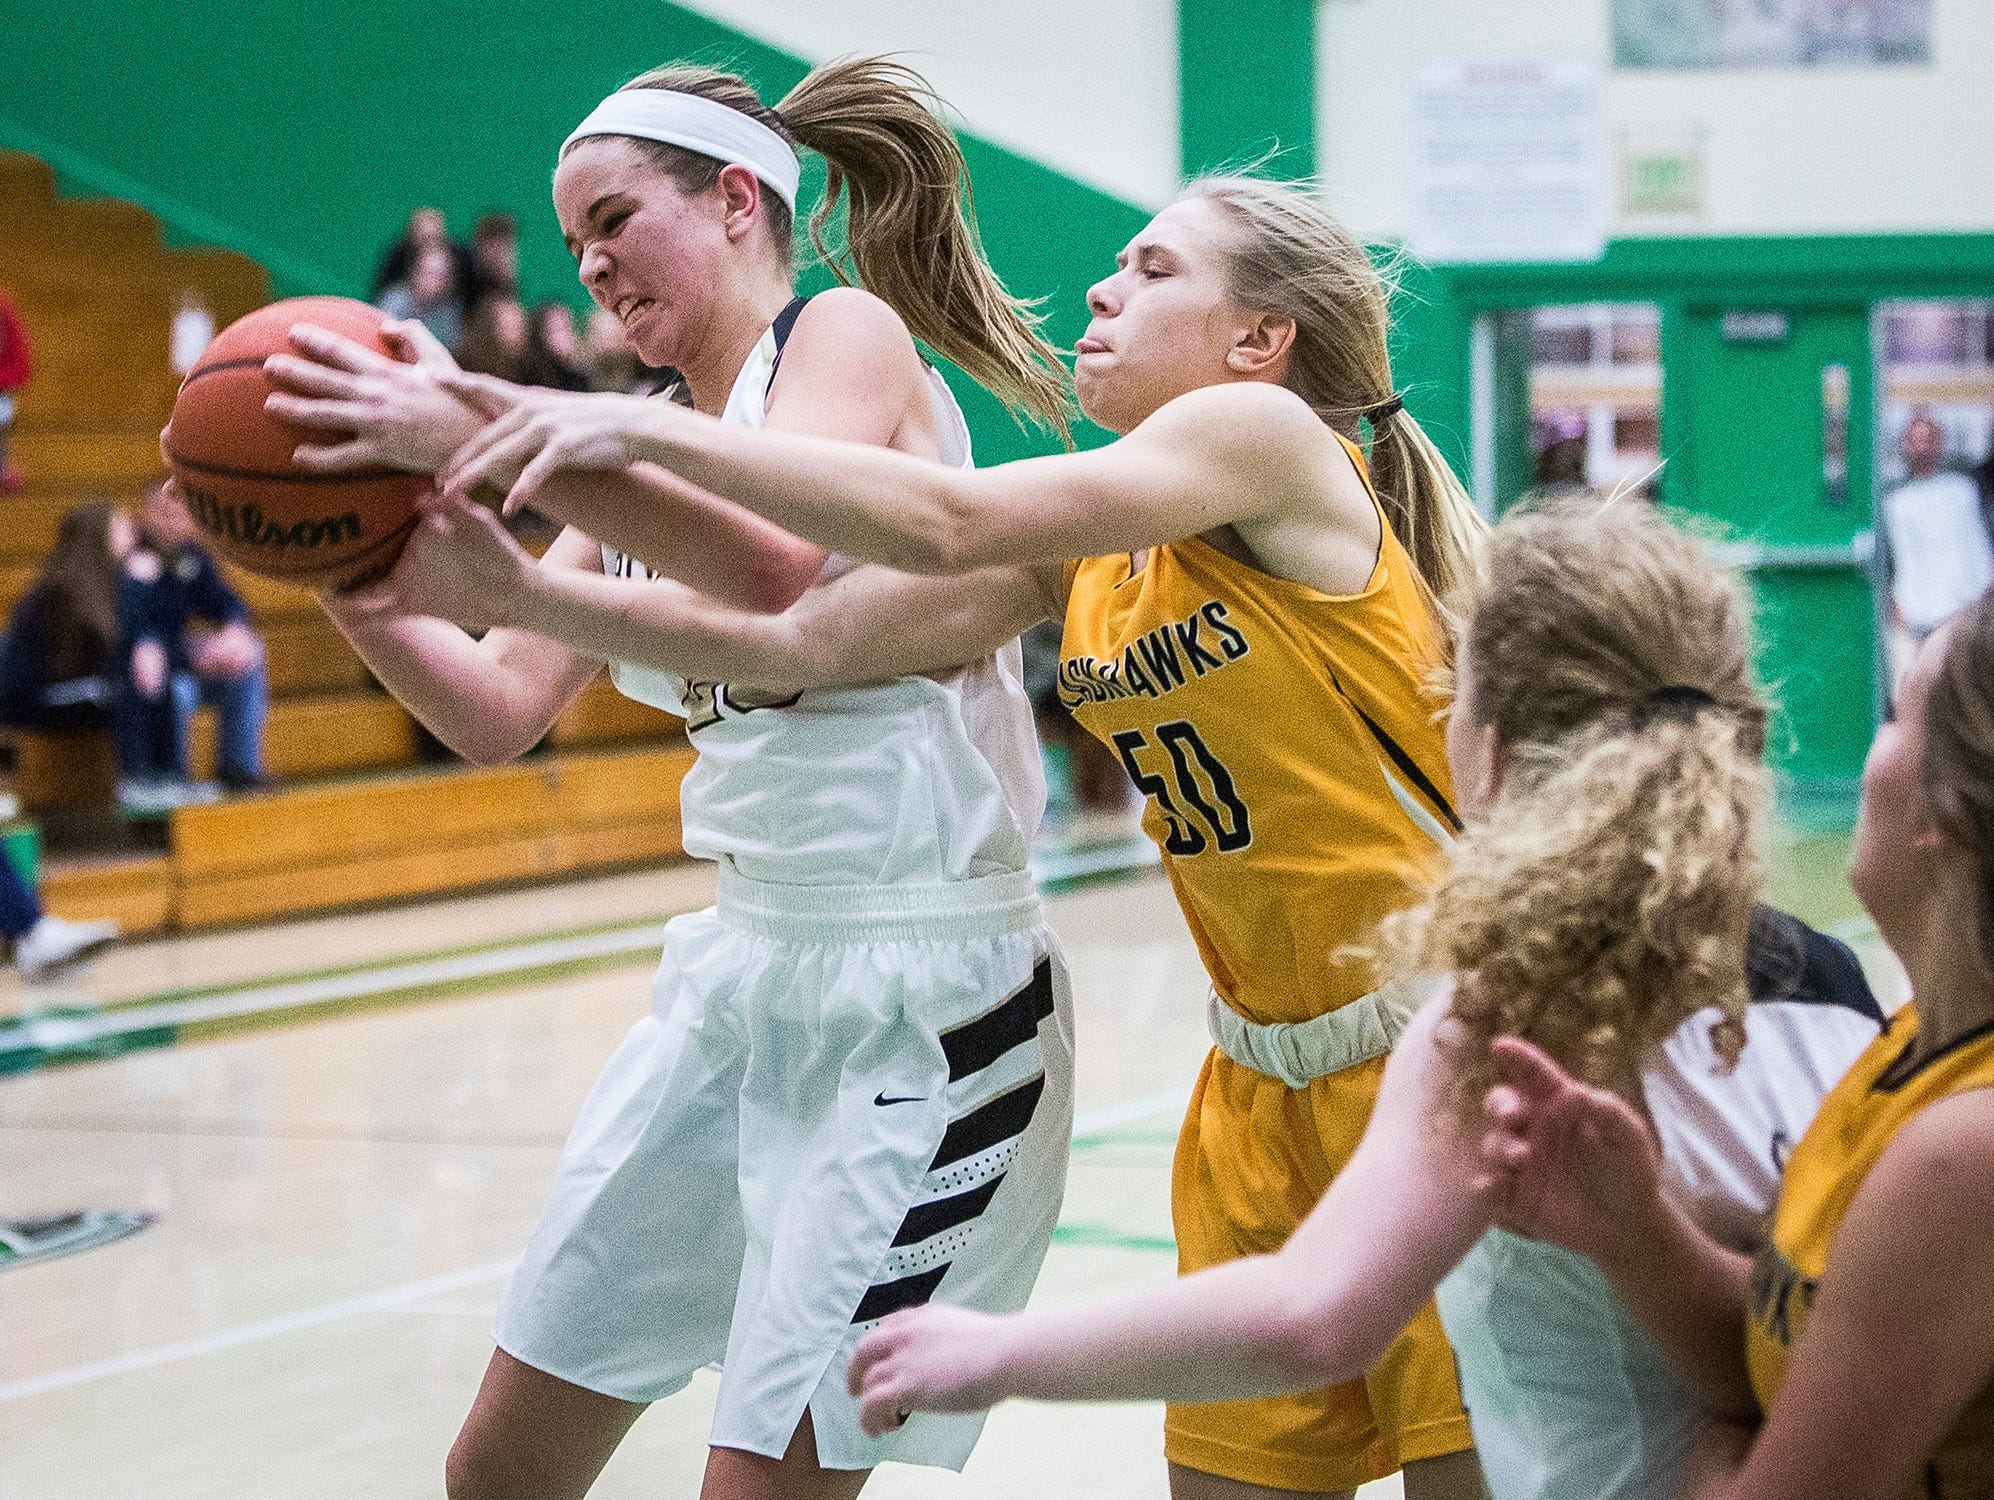 Daleville's Eve Emery battles for possession against Cowan during their game at Yorktown High School Tuesday, Jan. 8, 2019.